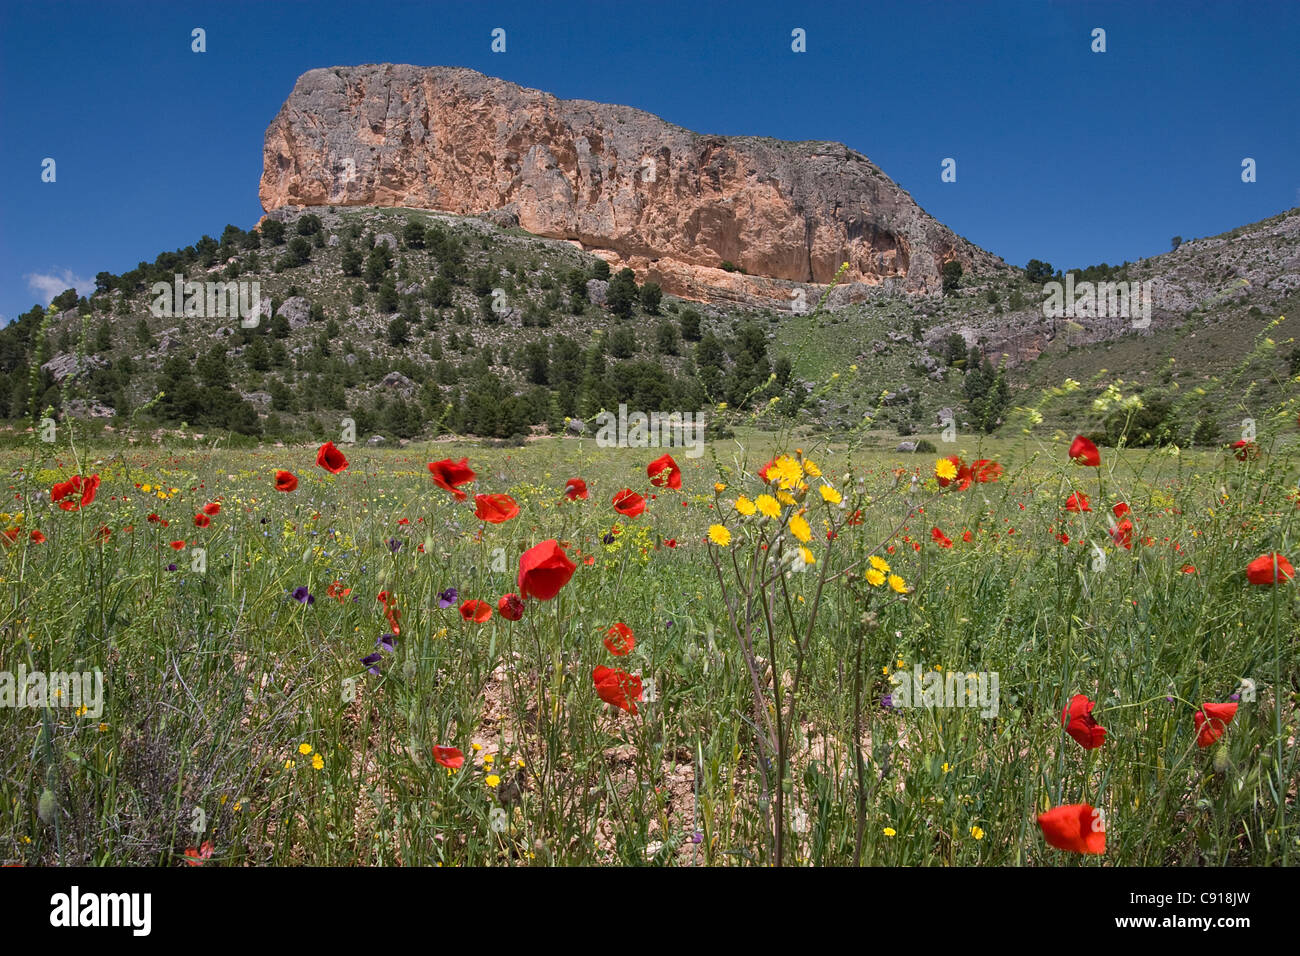 Penarrubia or Ruby Rock is a landmark rock outcrop overlooking the wild flowers of the fields of the hill country - Stock Image